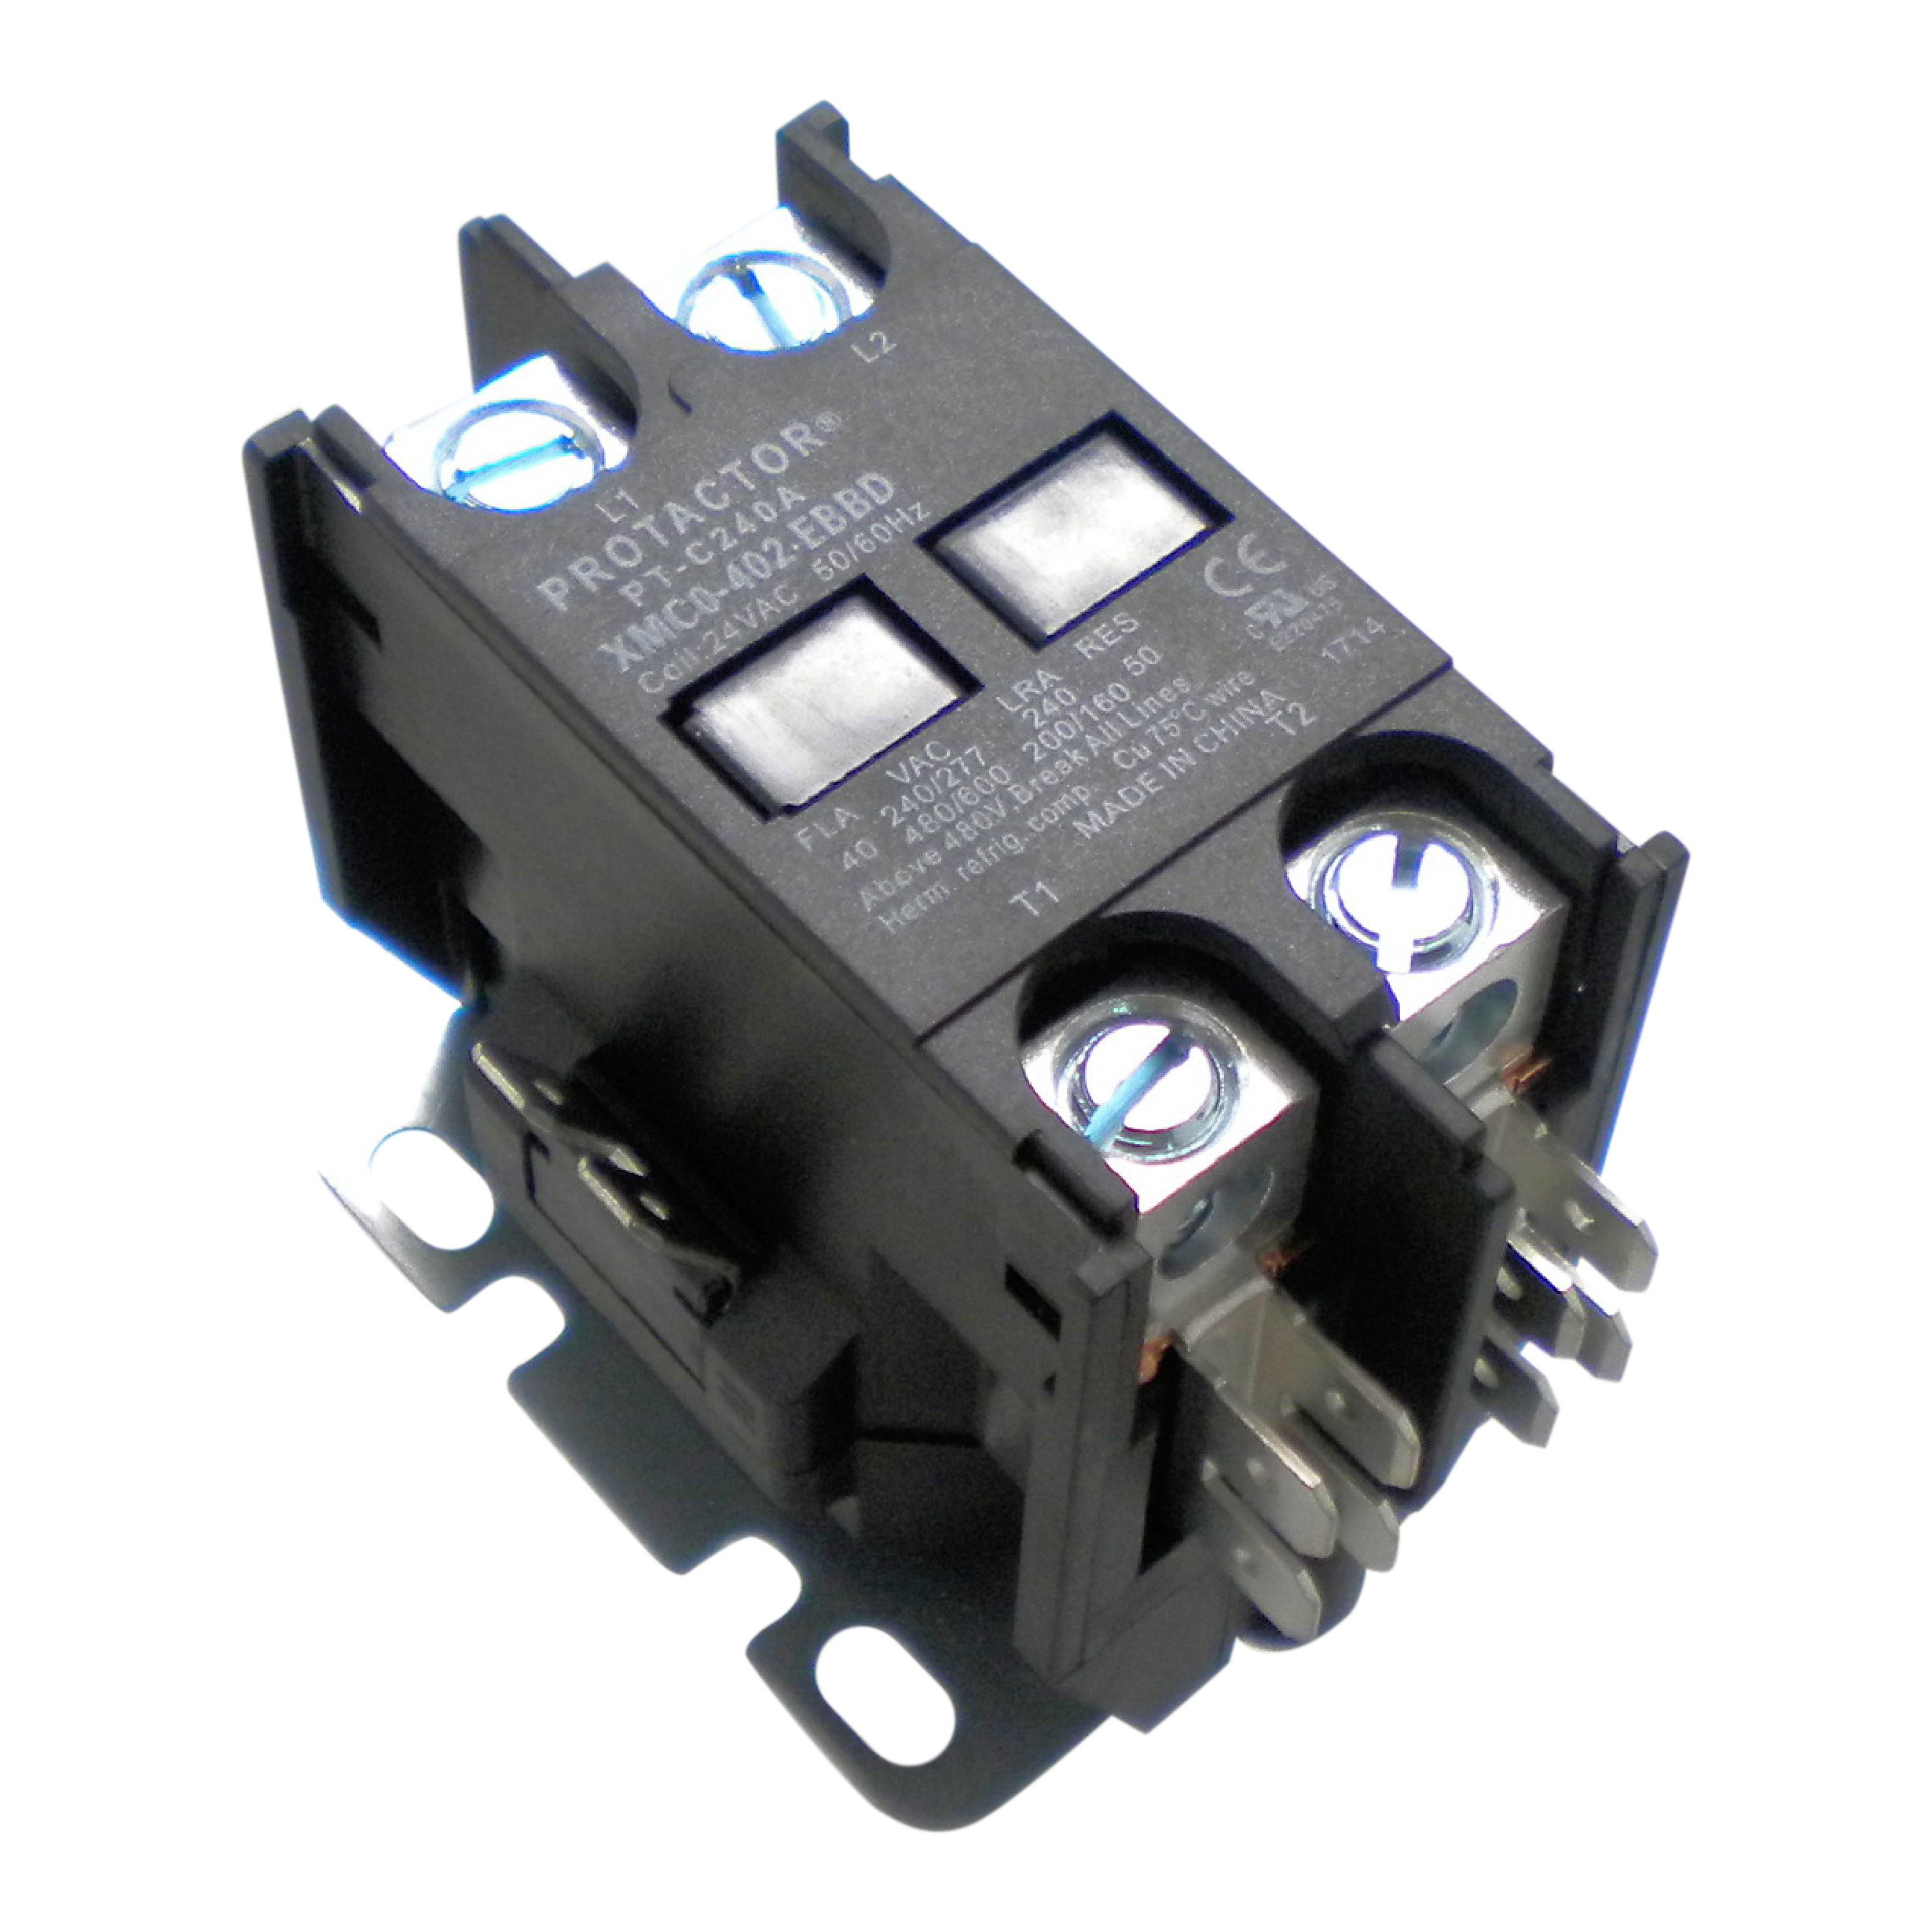 OneTrip Parts Contactor 2 Pole 40 Amp Protactor Heavy Duty Enclosed Replacement For Amana Goodman Janitrol CONT2P040024VS